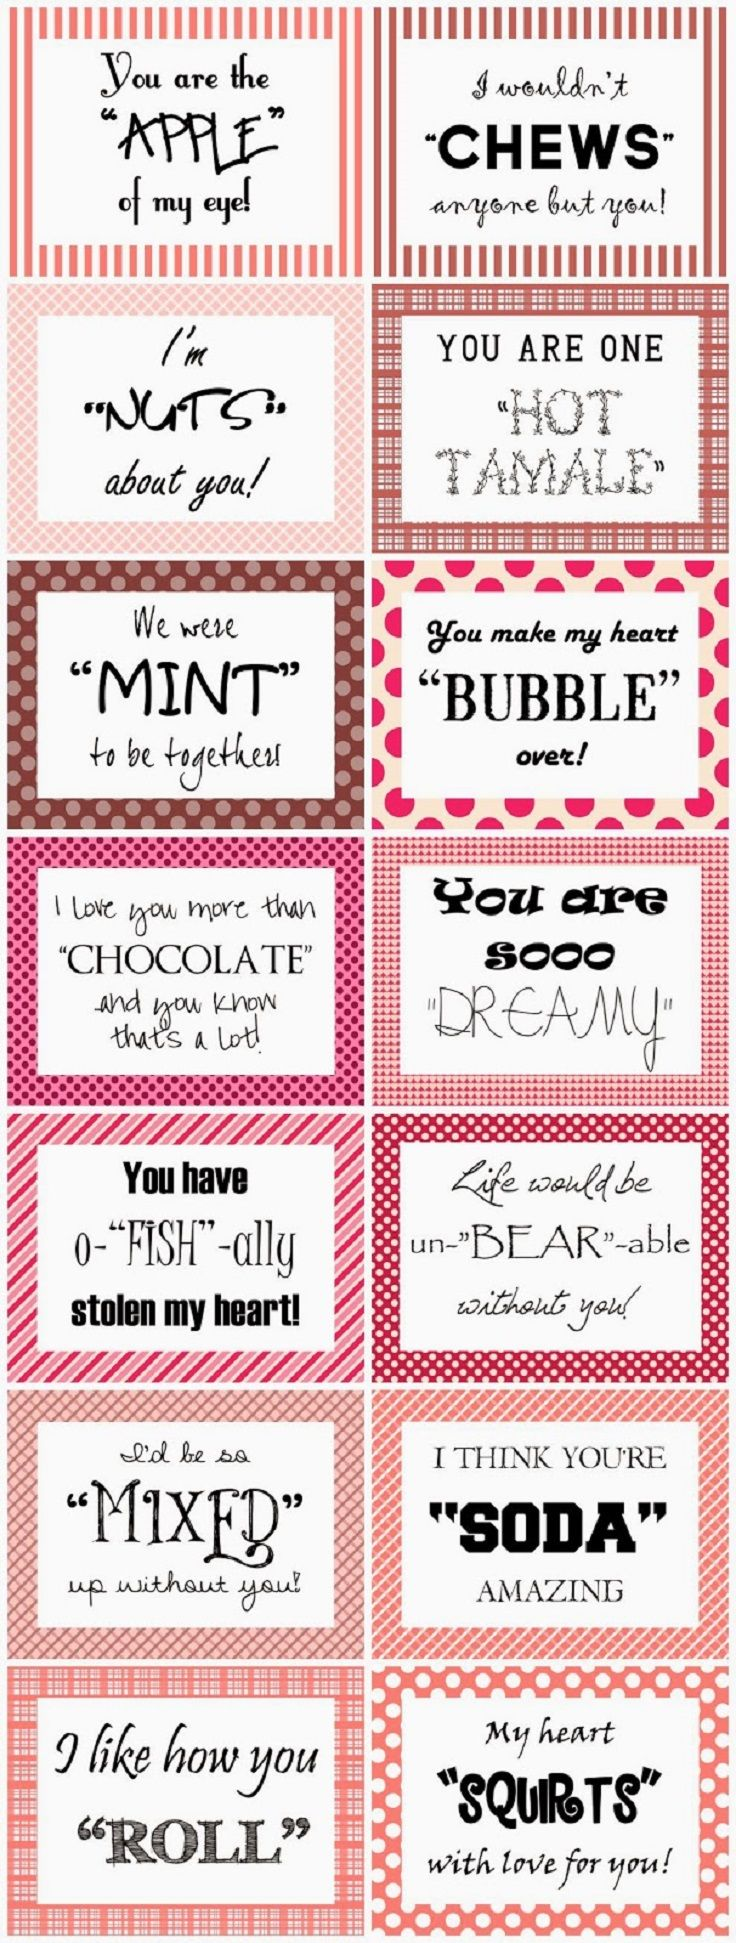 Cute and Funny Valentine's Day Card Ideas - 14 ...